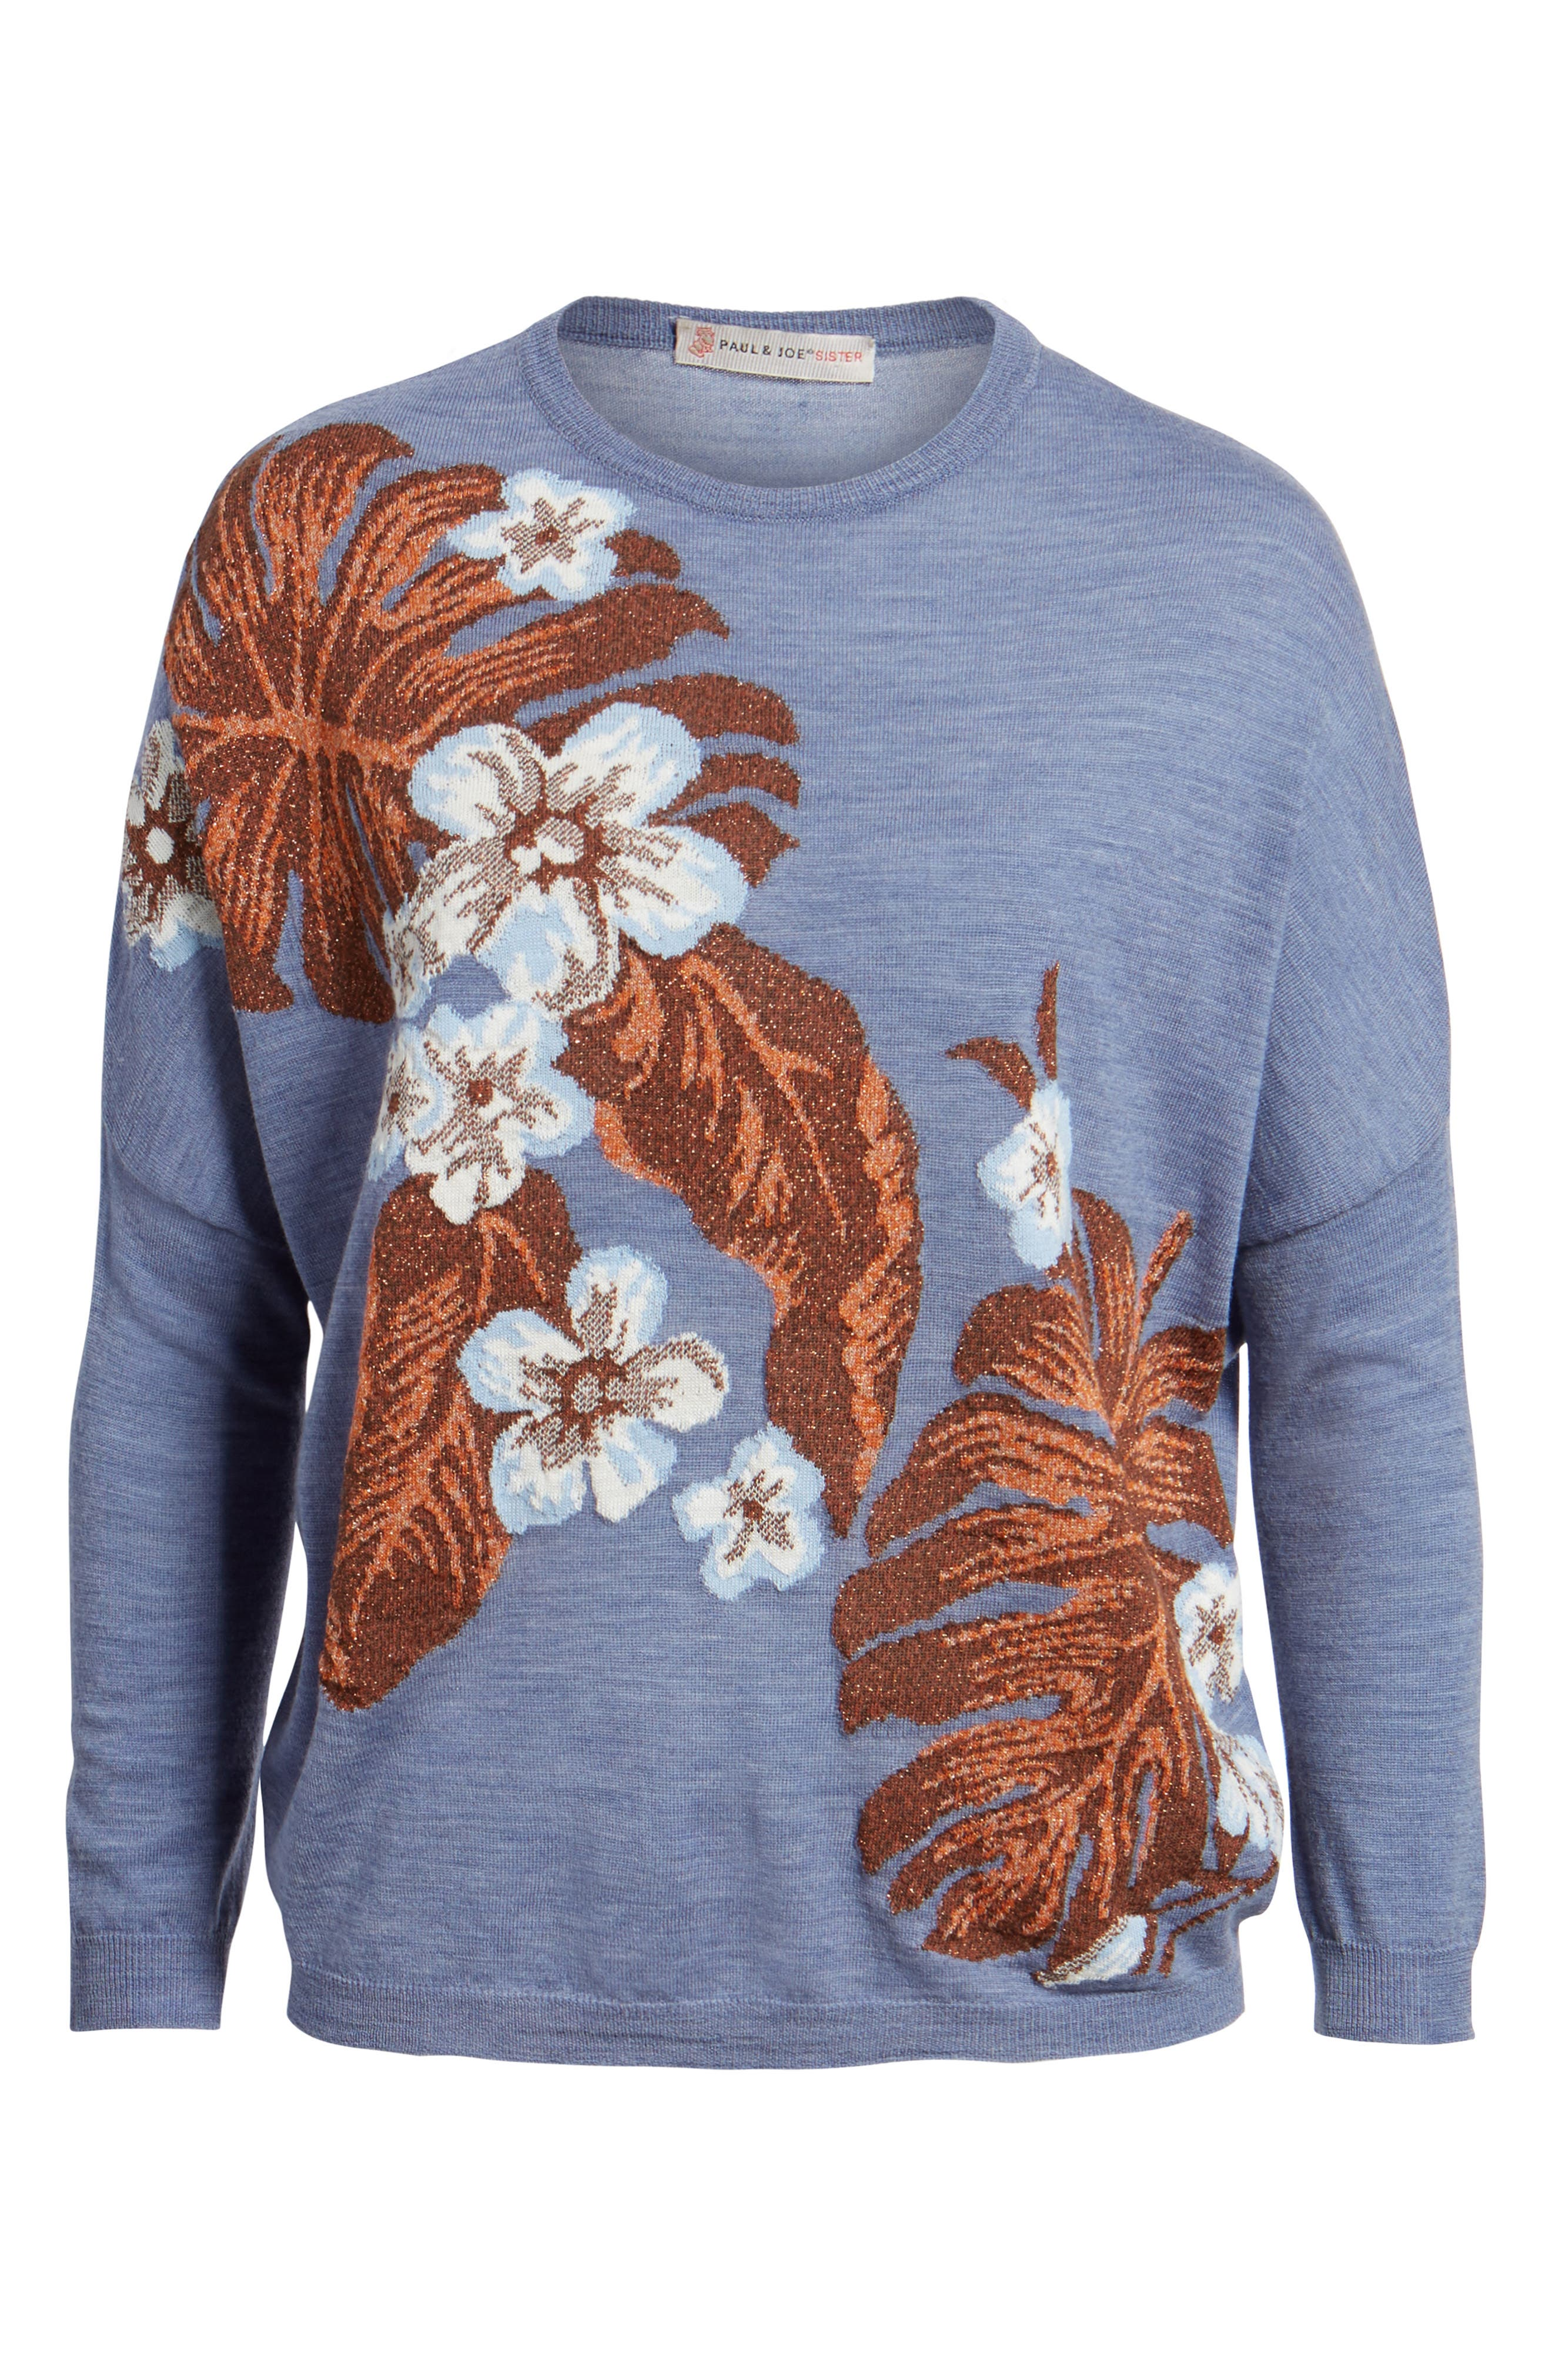 Blupalm Sweater,                             Alternate thumbnail 6, color,                             400